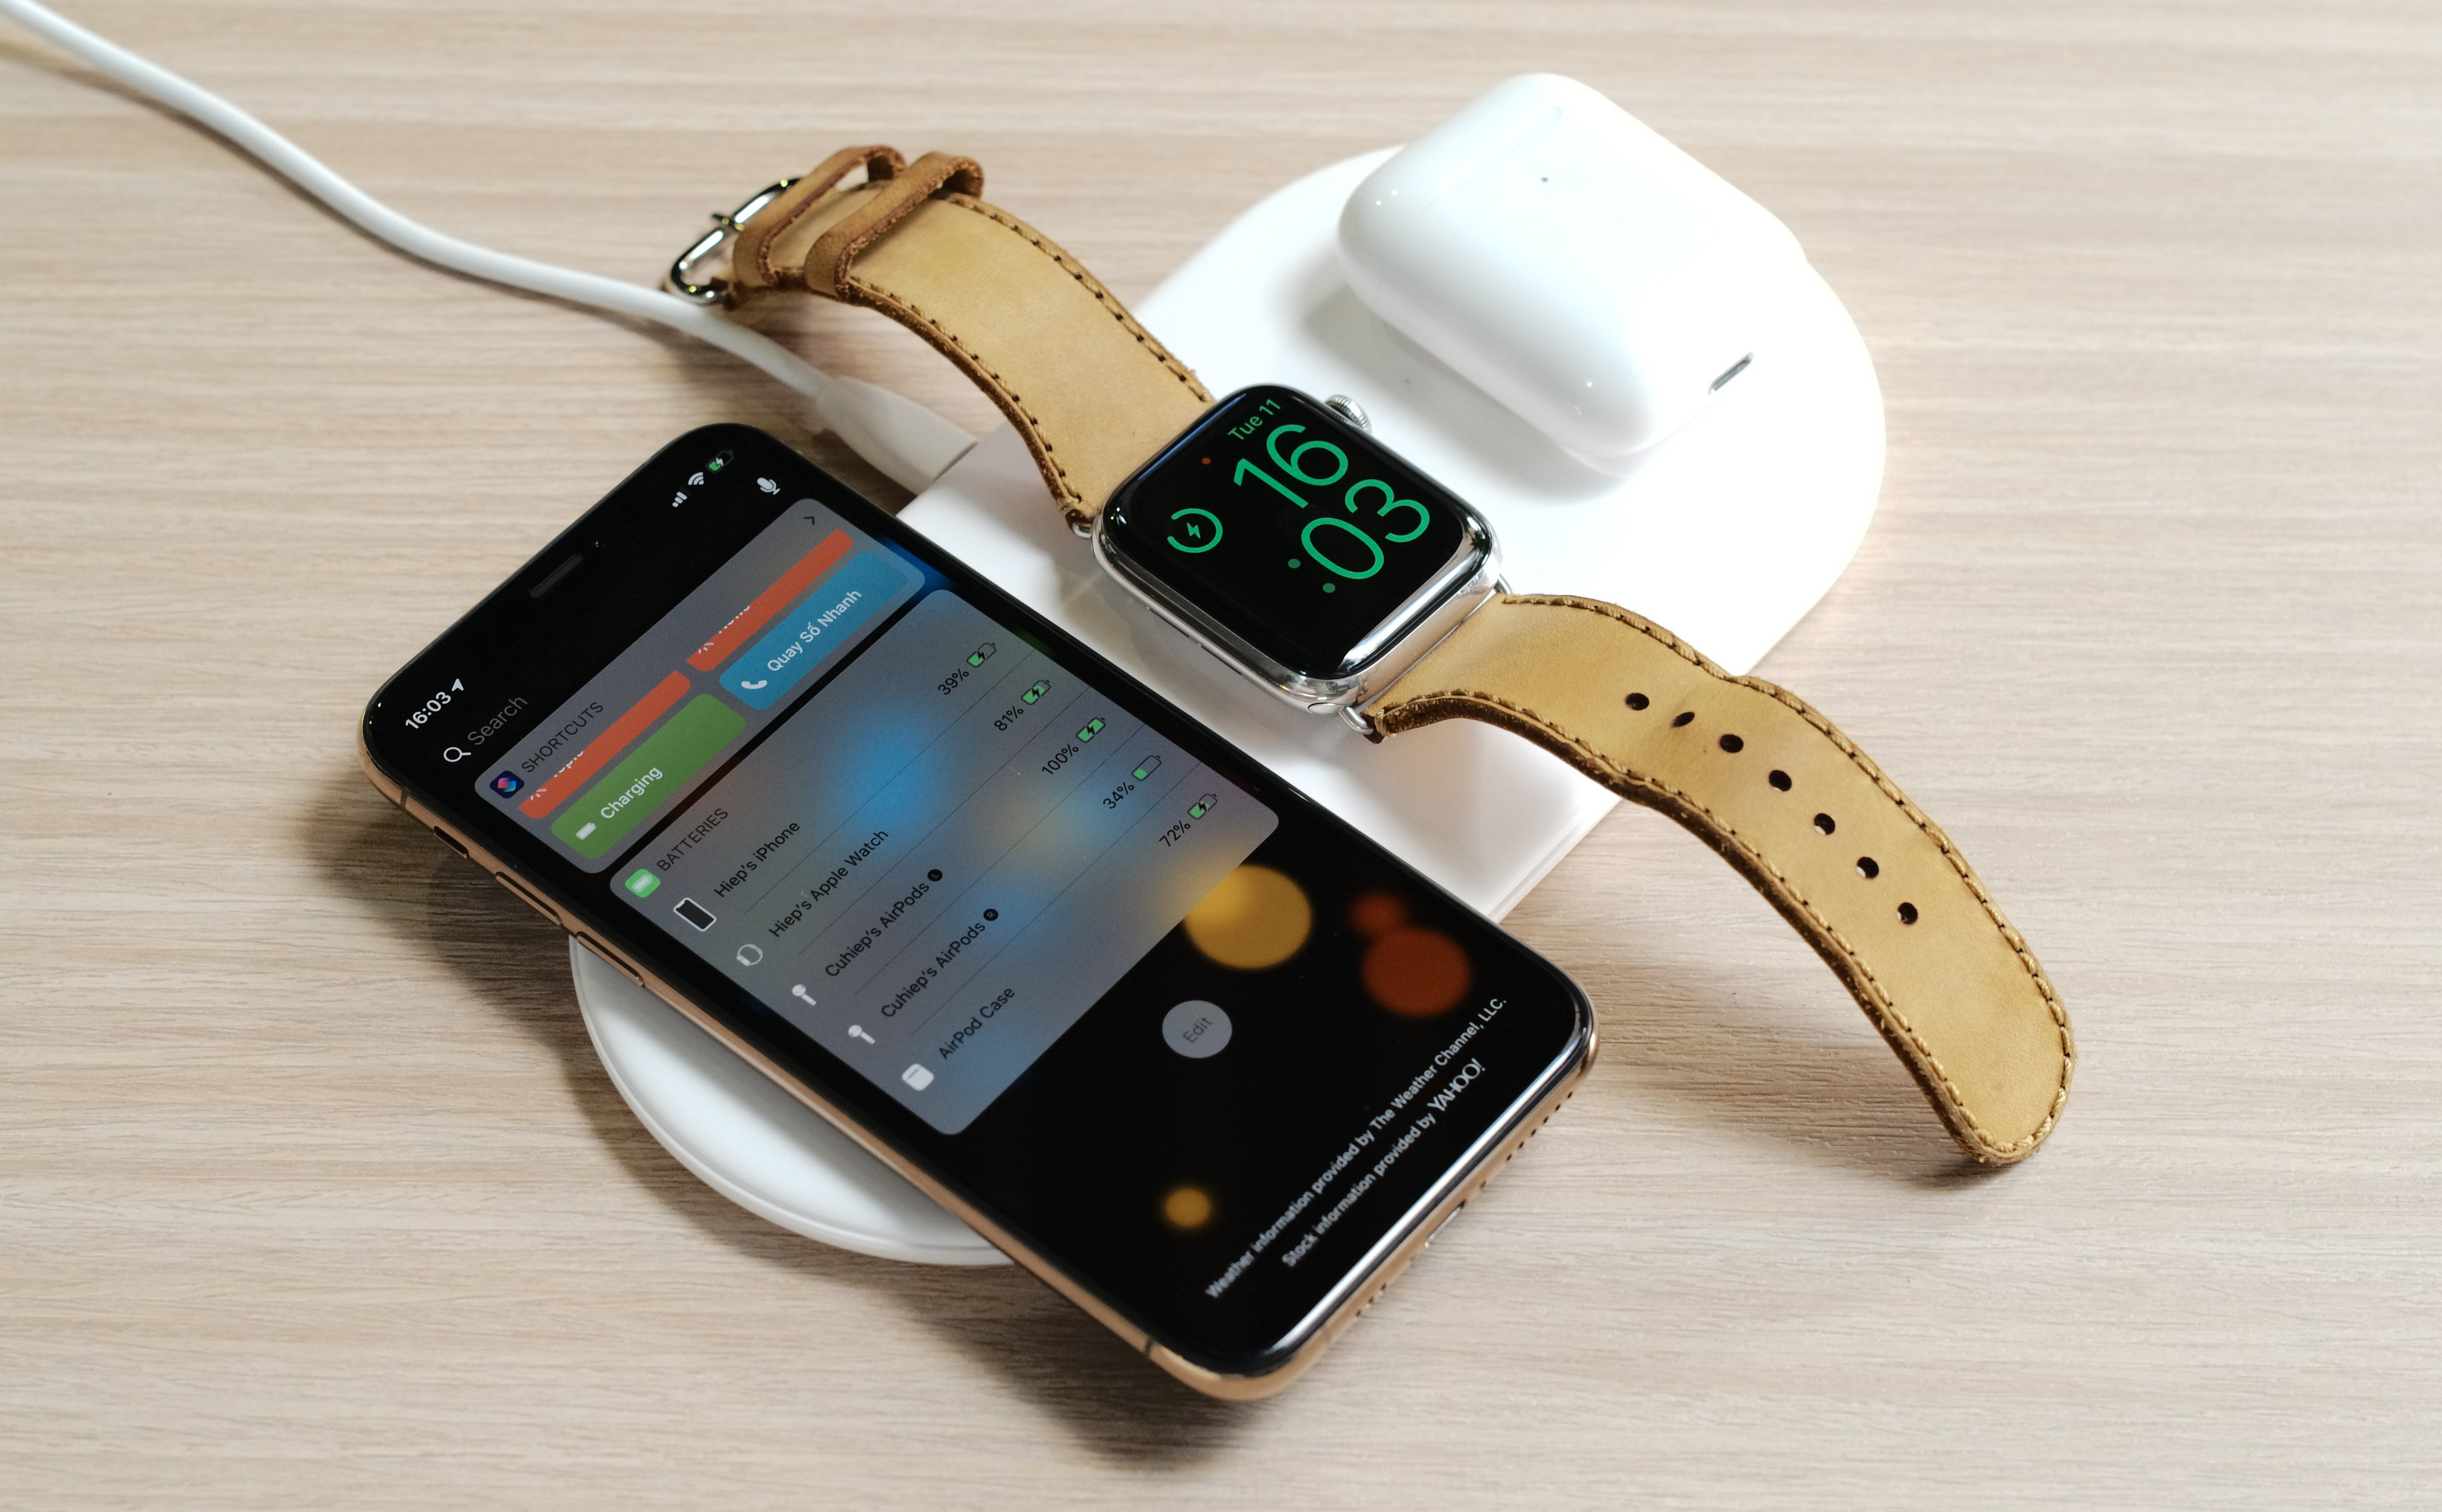 On the hands of 3-way wireless charger iPhone, Airpods and Apple Watch of Baseus